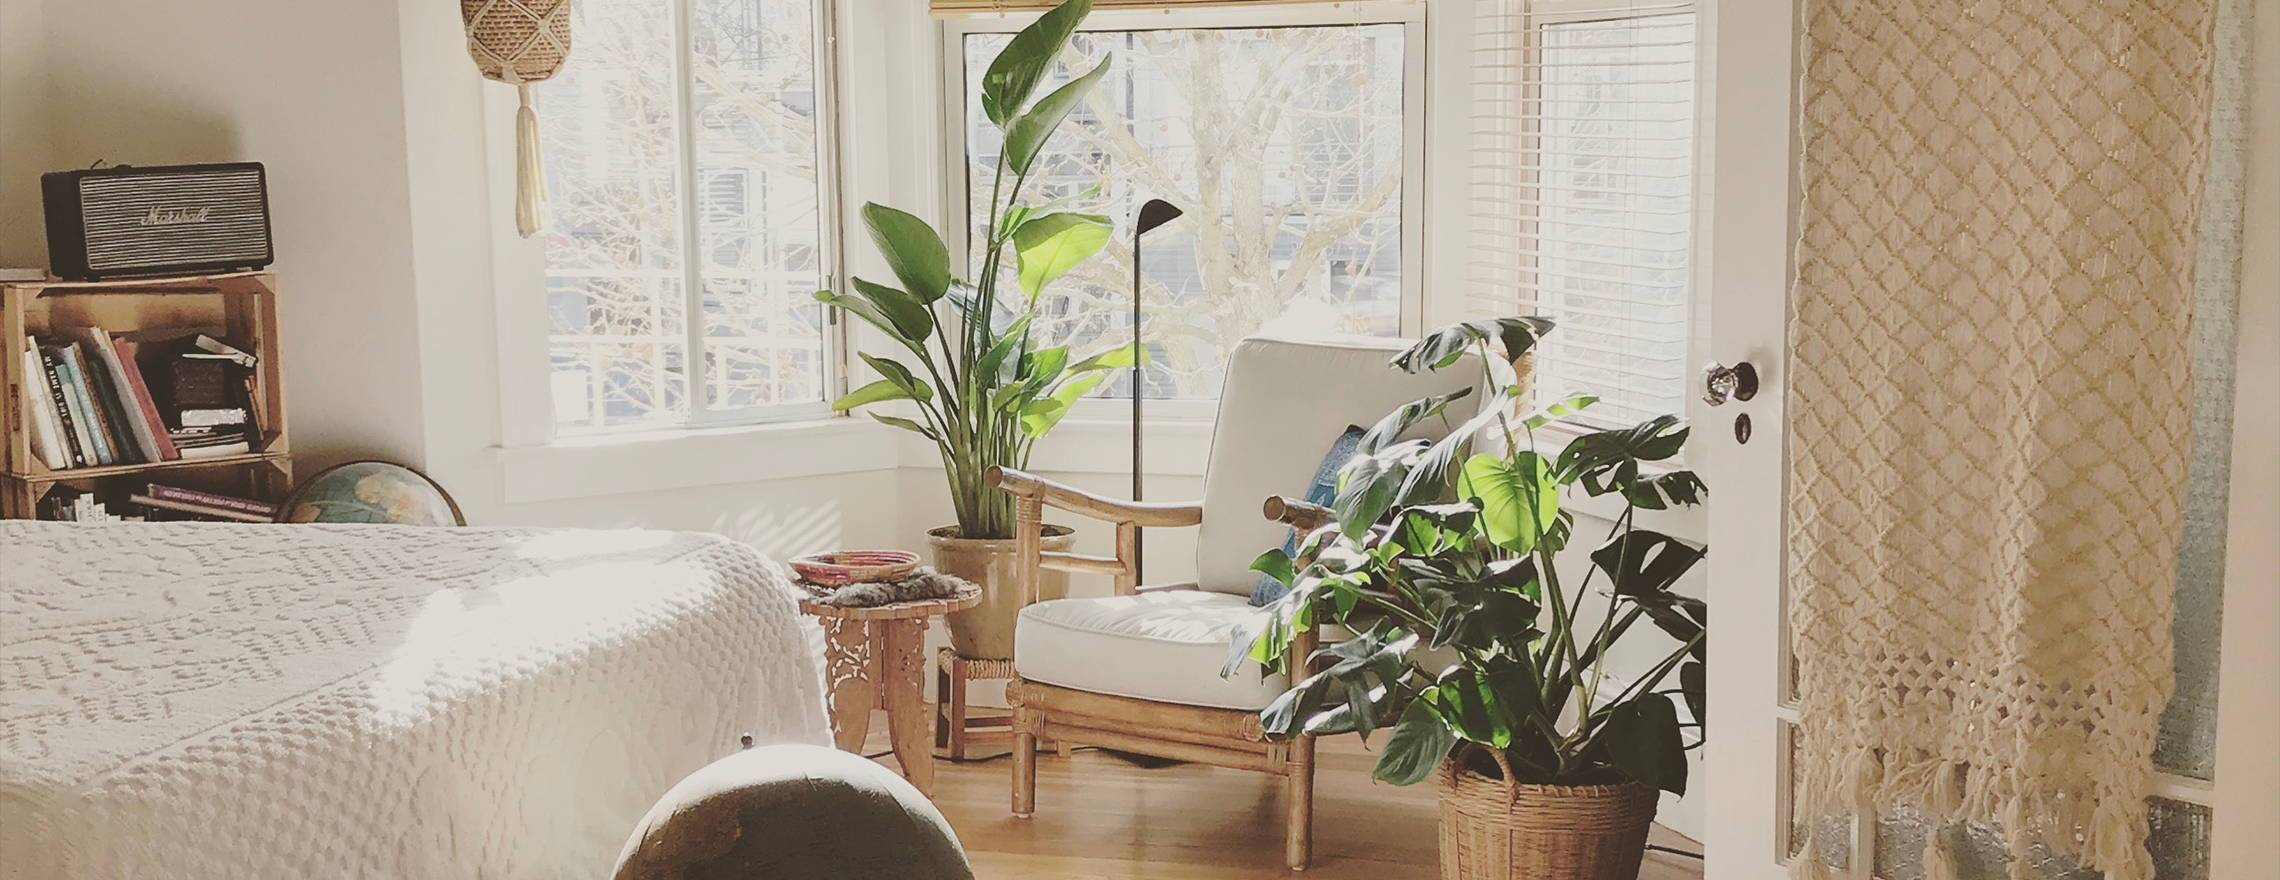 leesa_bed_in_a_decorated_room_with_bay_window_and_plants